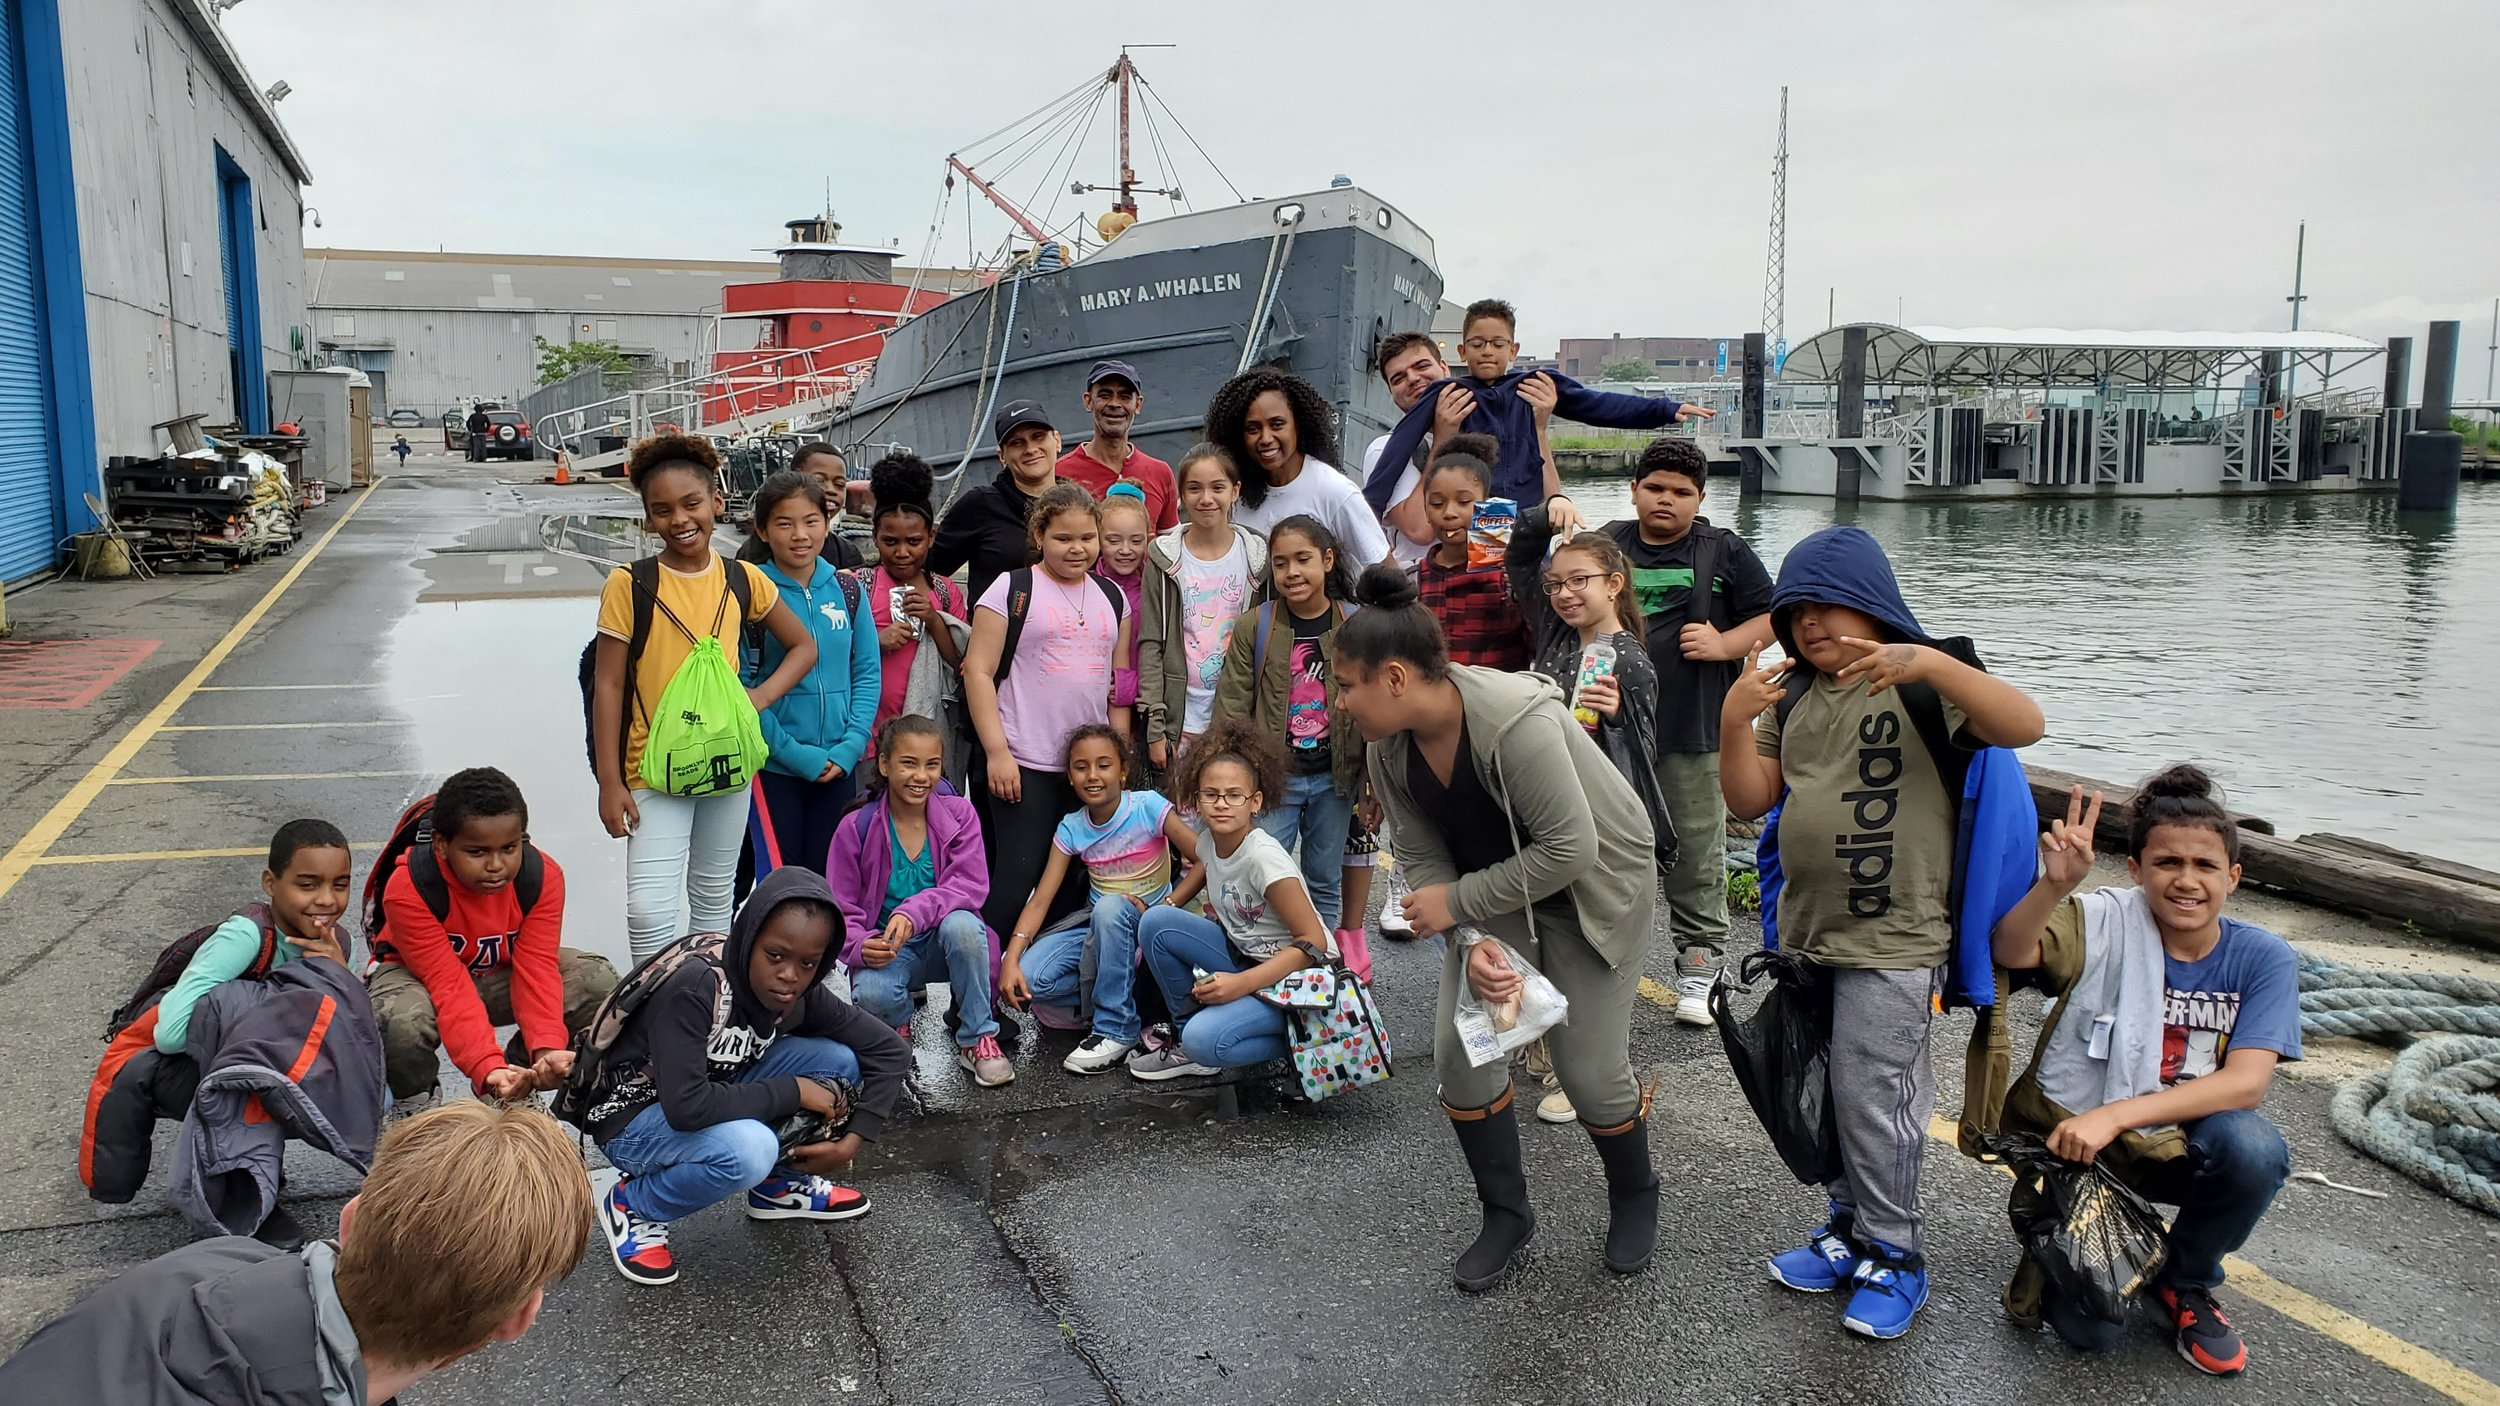 some PS 676 students and staff in front of portside newyork's ship mary a. whalen